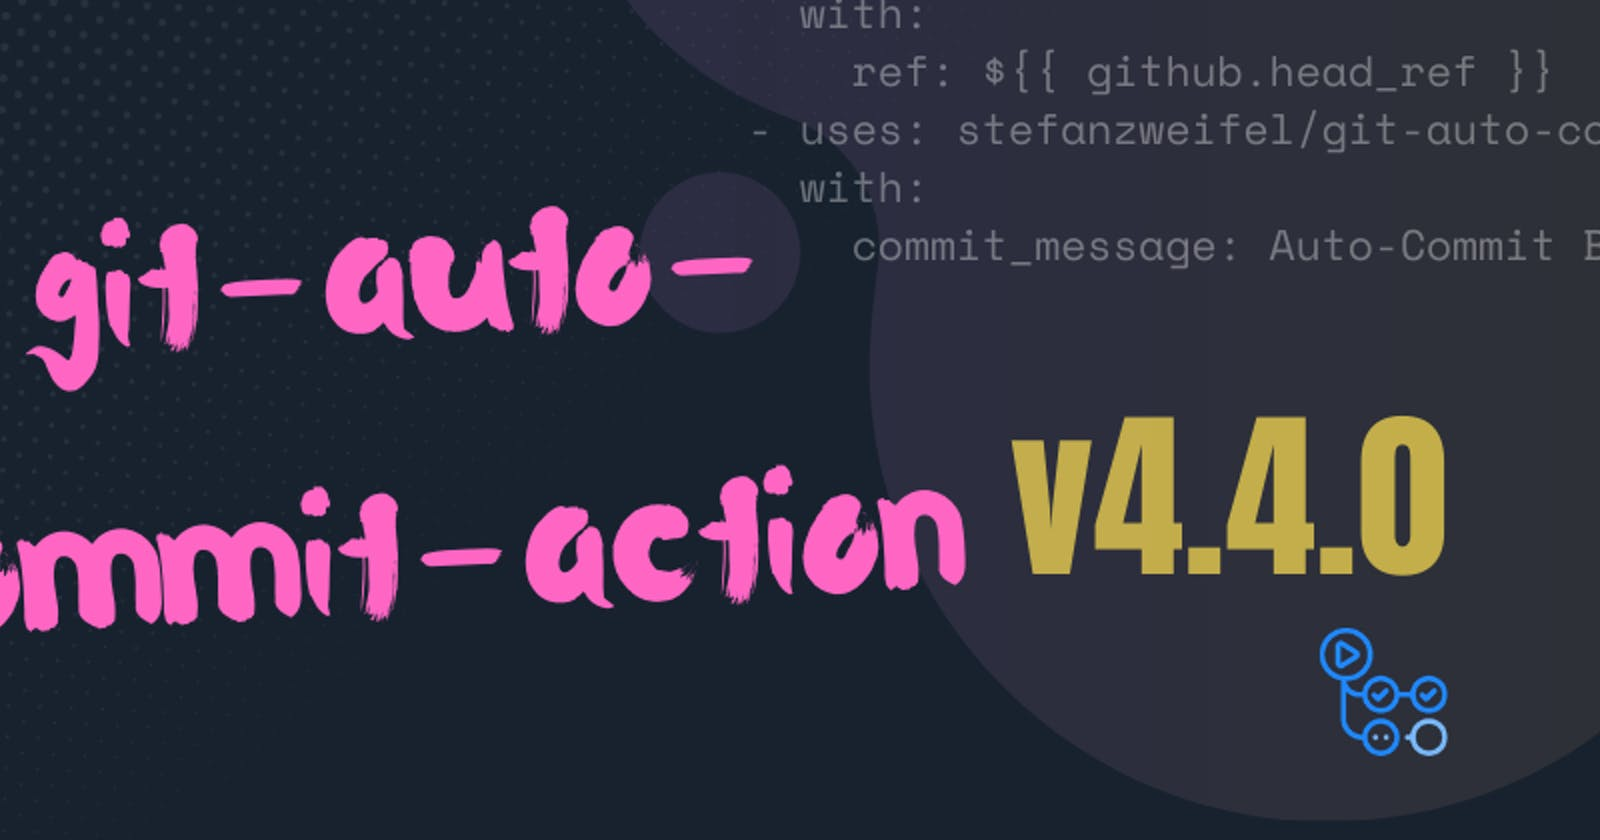 Review of the git-auto-commit-action